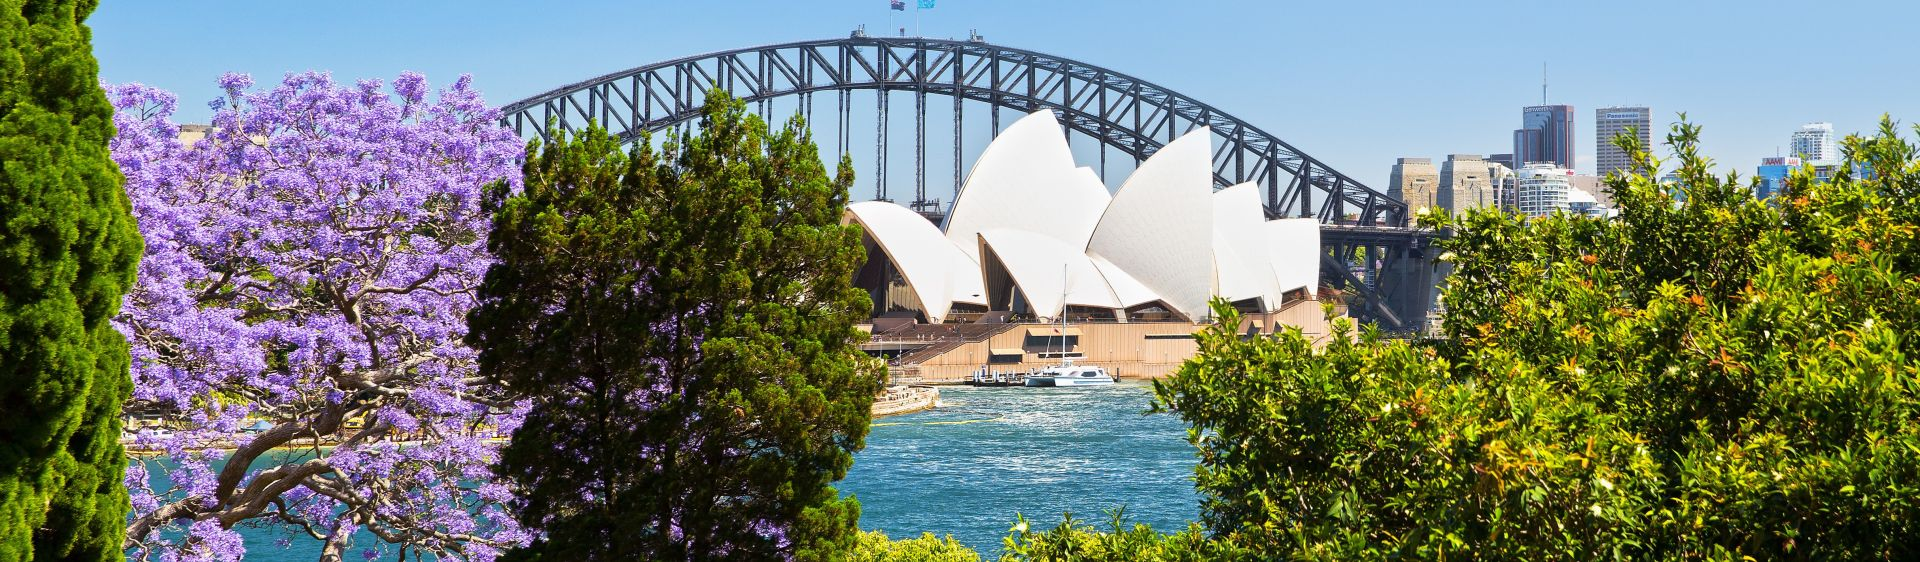 Expedia.com.au - Travel: Cheap Flights, Hotels, Packages ...